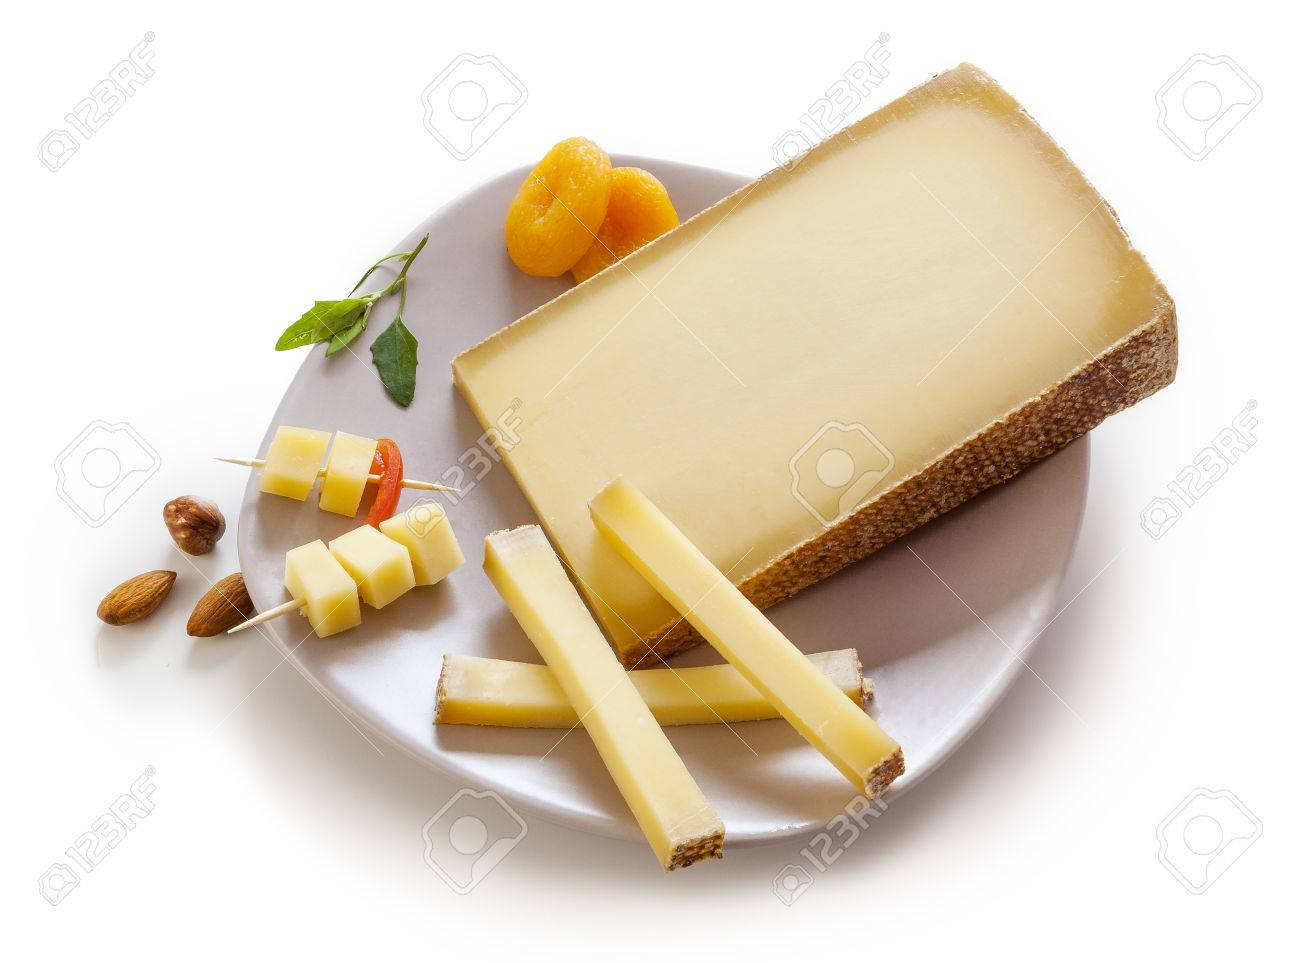 Swiss Gruyere cheese in a plate on white background - 41988358